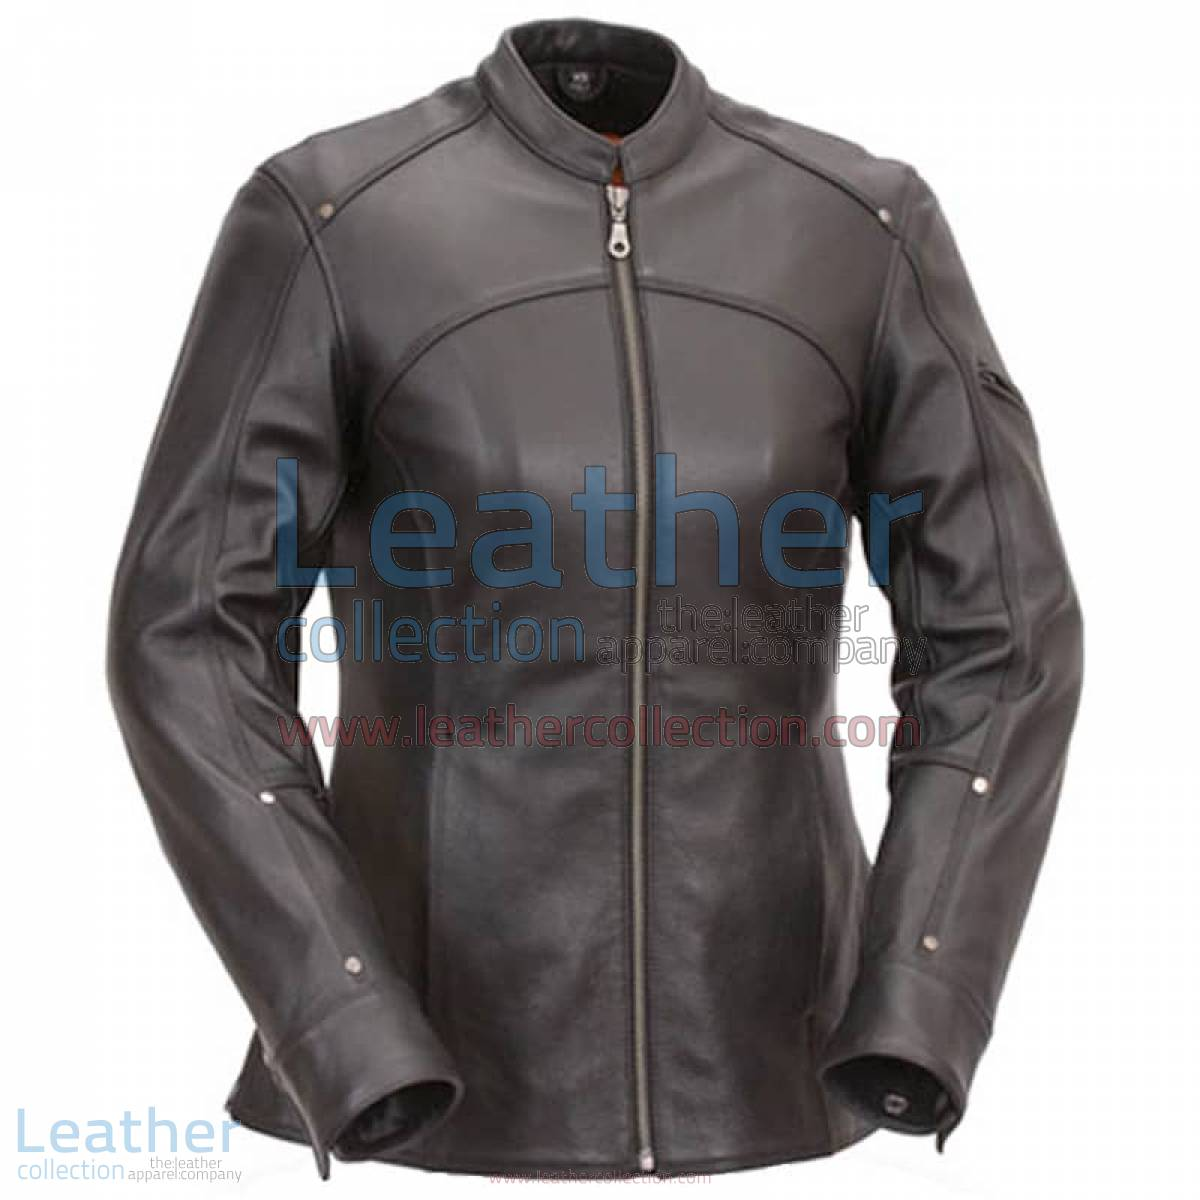 3/4 Length Touring Motorcycle Leather Jacket | 3/4 length jacket